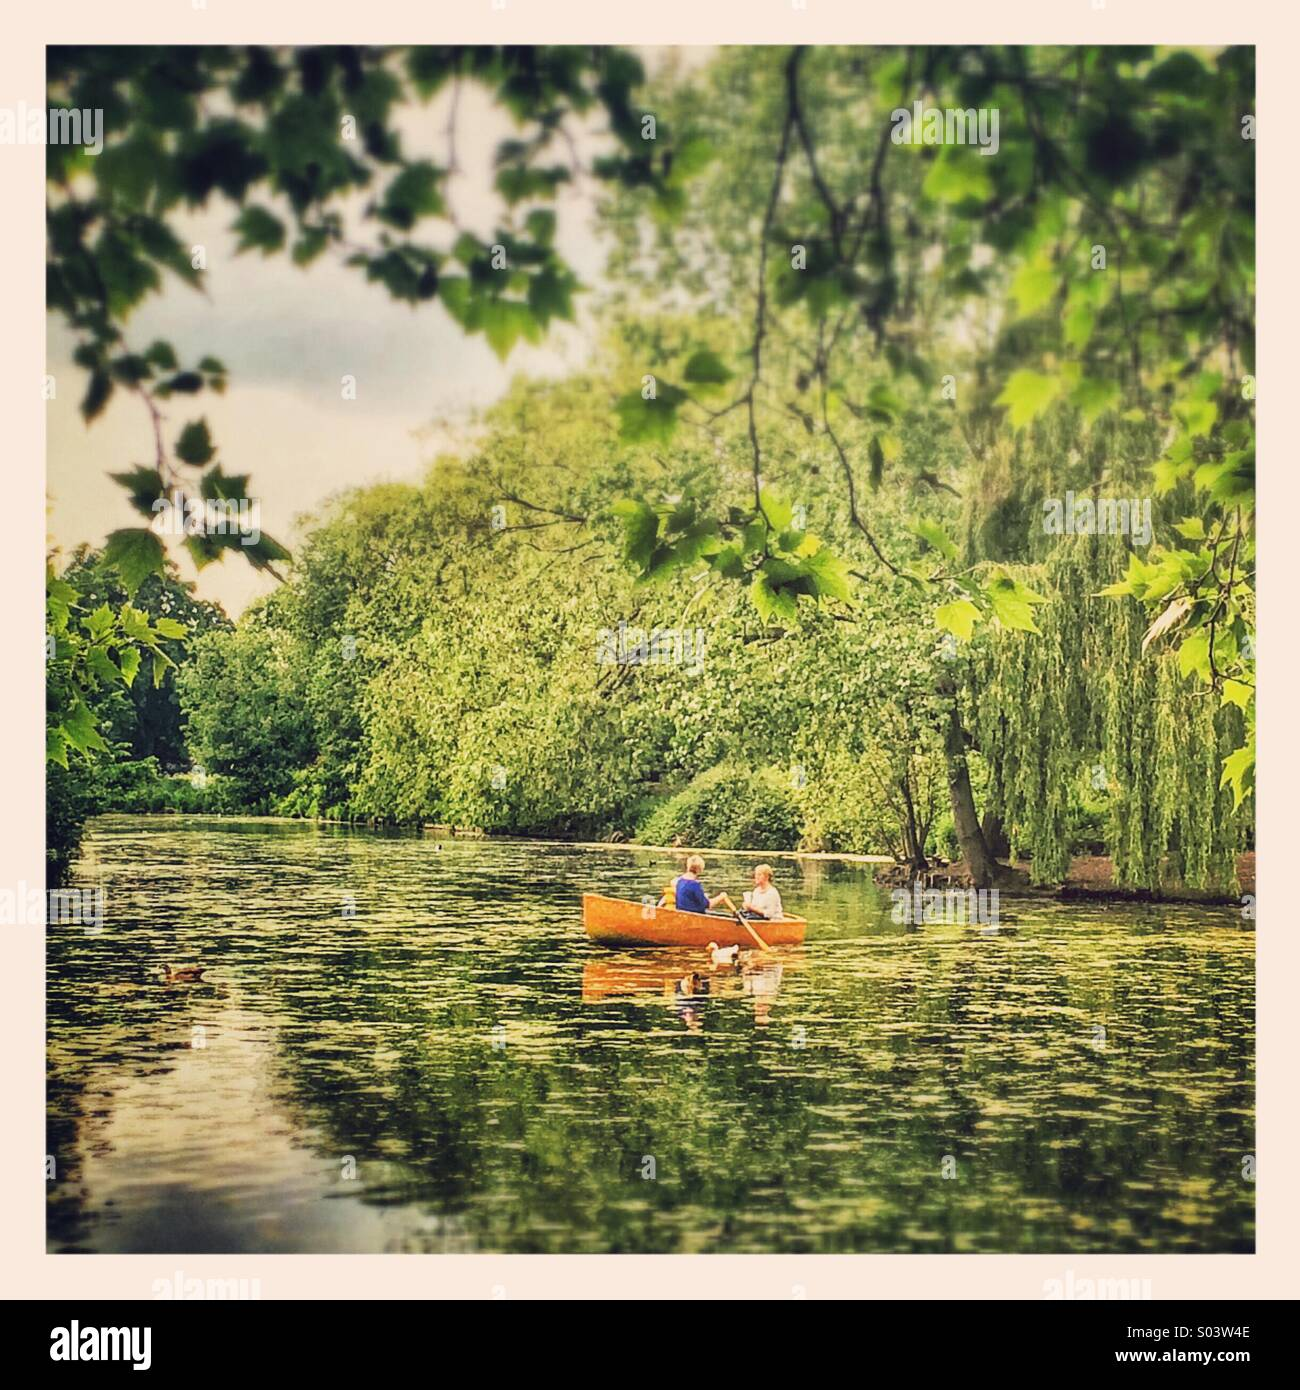 Boating on a lake in Finsbury Park, London - Stock Image